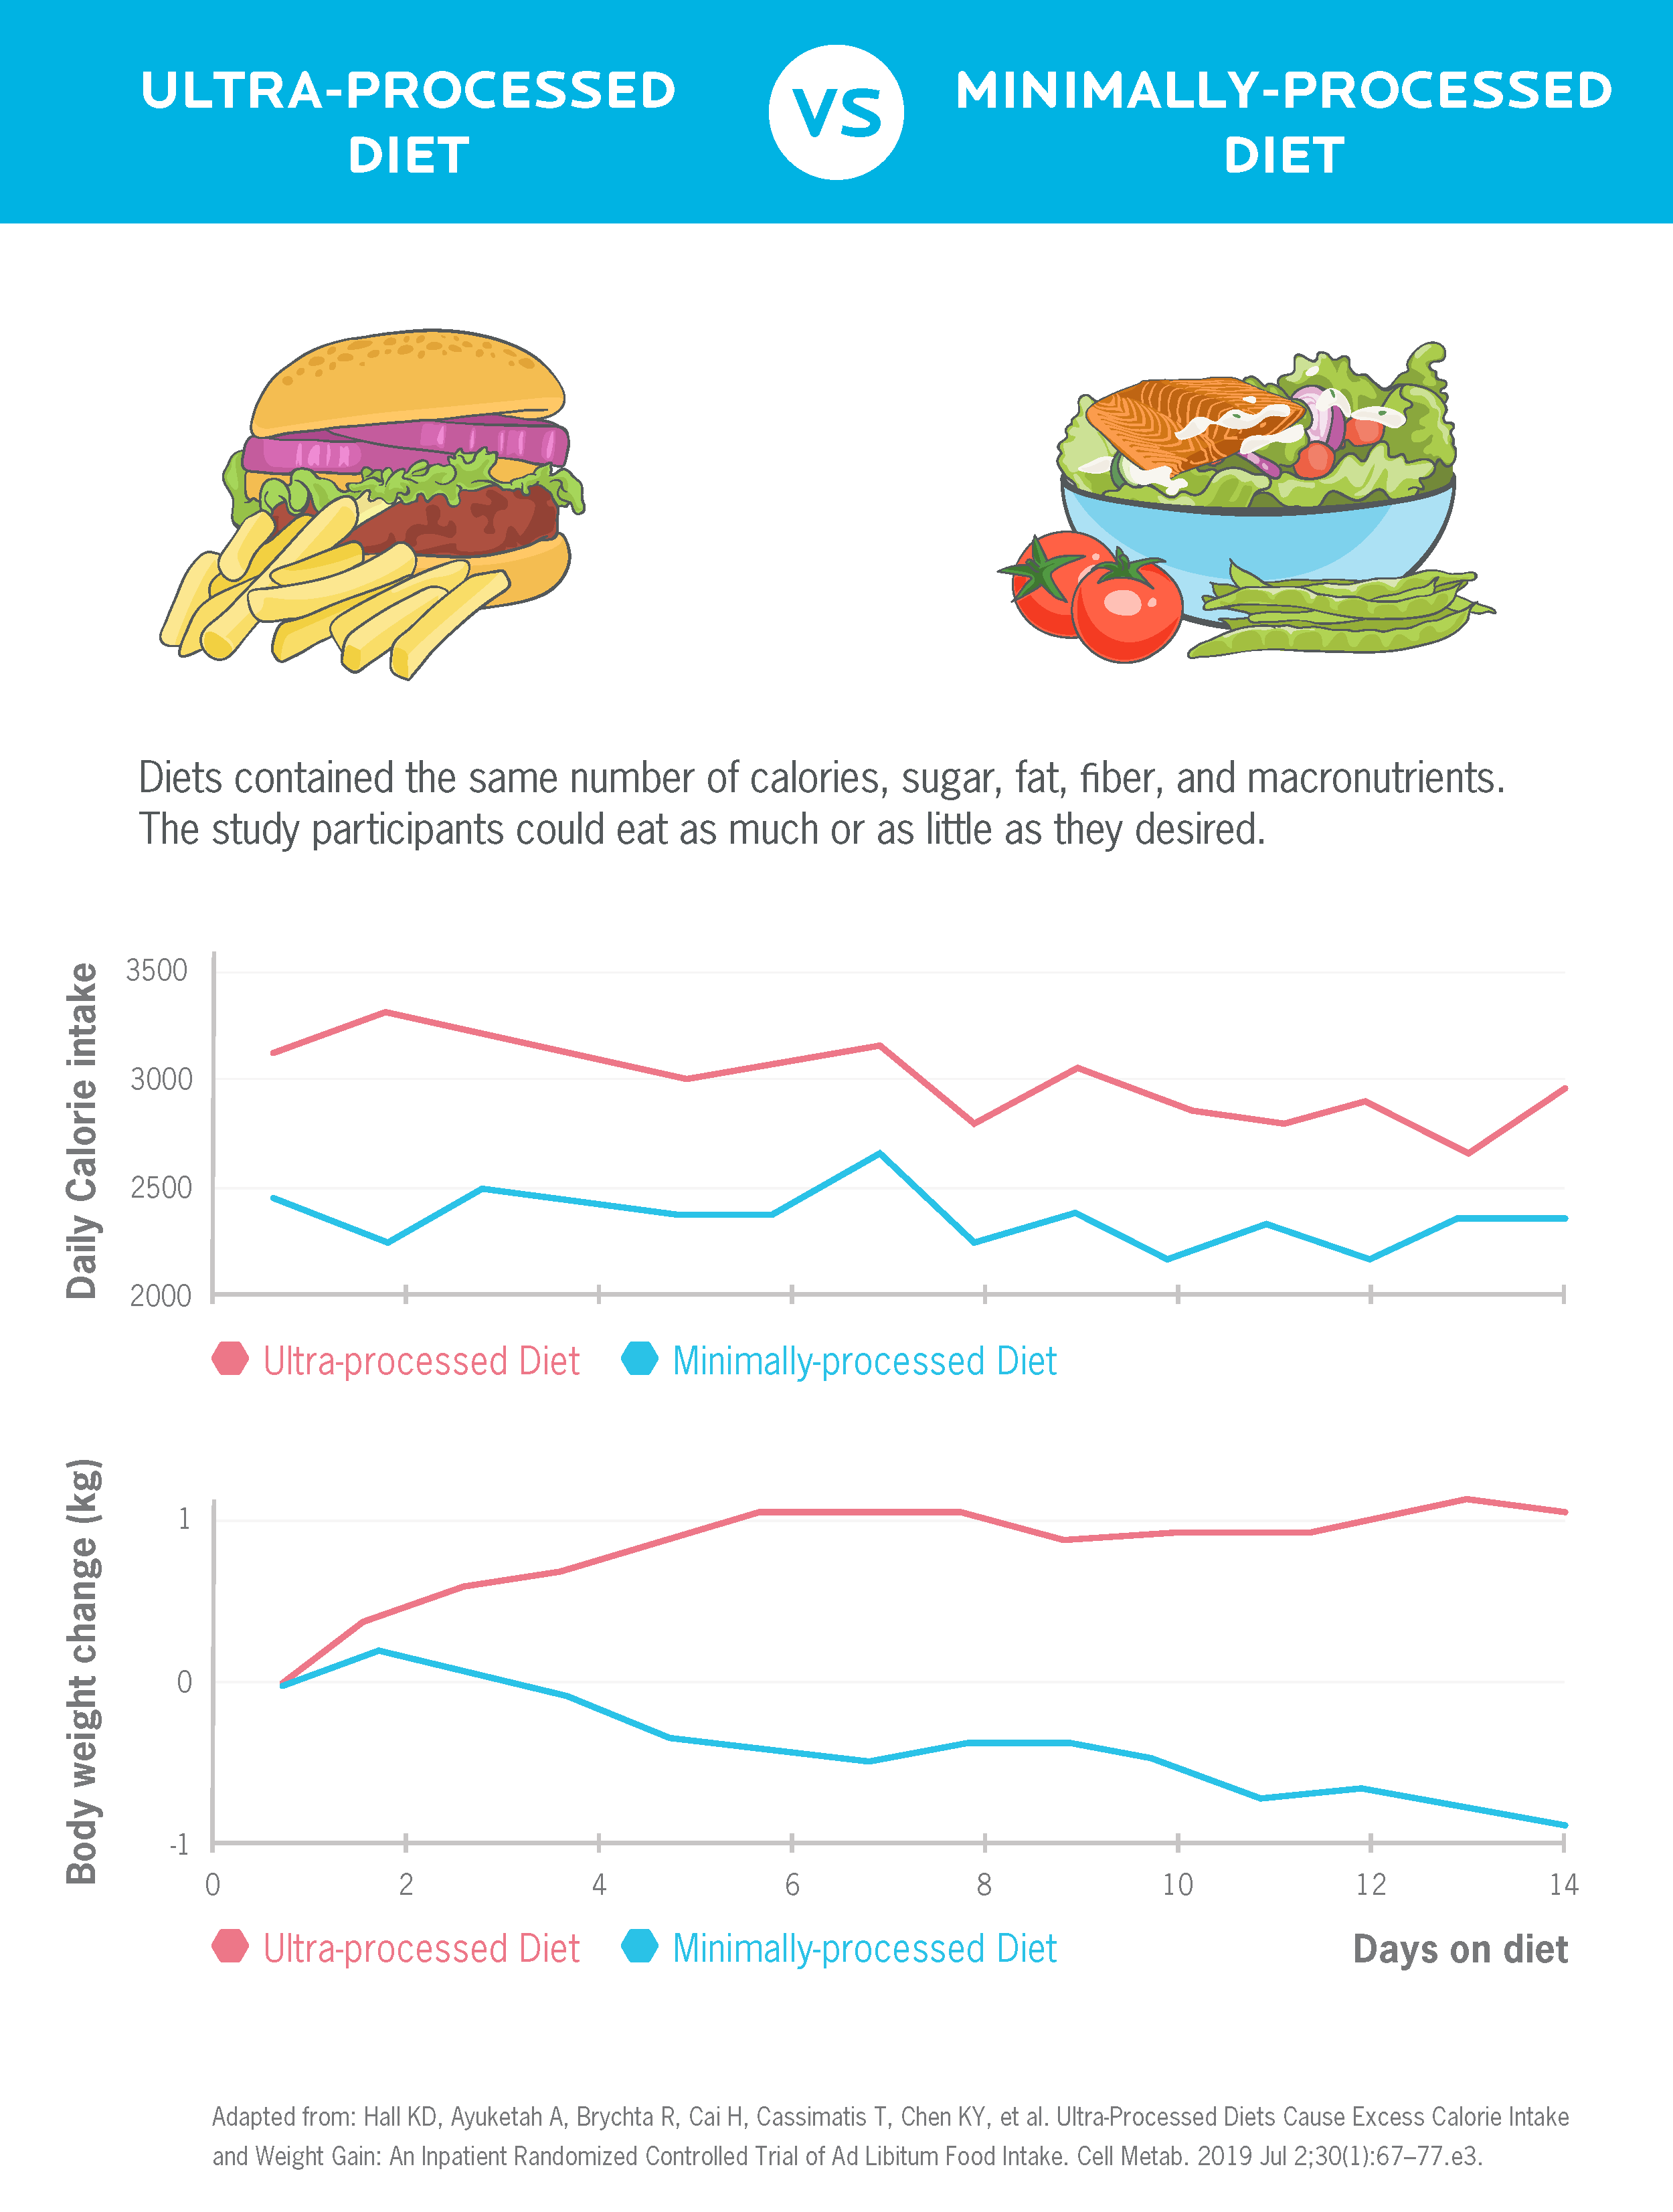 This shows study results of an ultra-processed diet versus a minimally-processed diet. Graphs show that people eating an ultra-processed diet ate more calories and gained weight, while those eating a minimally-processed diet ate fewer calories and lost weight.